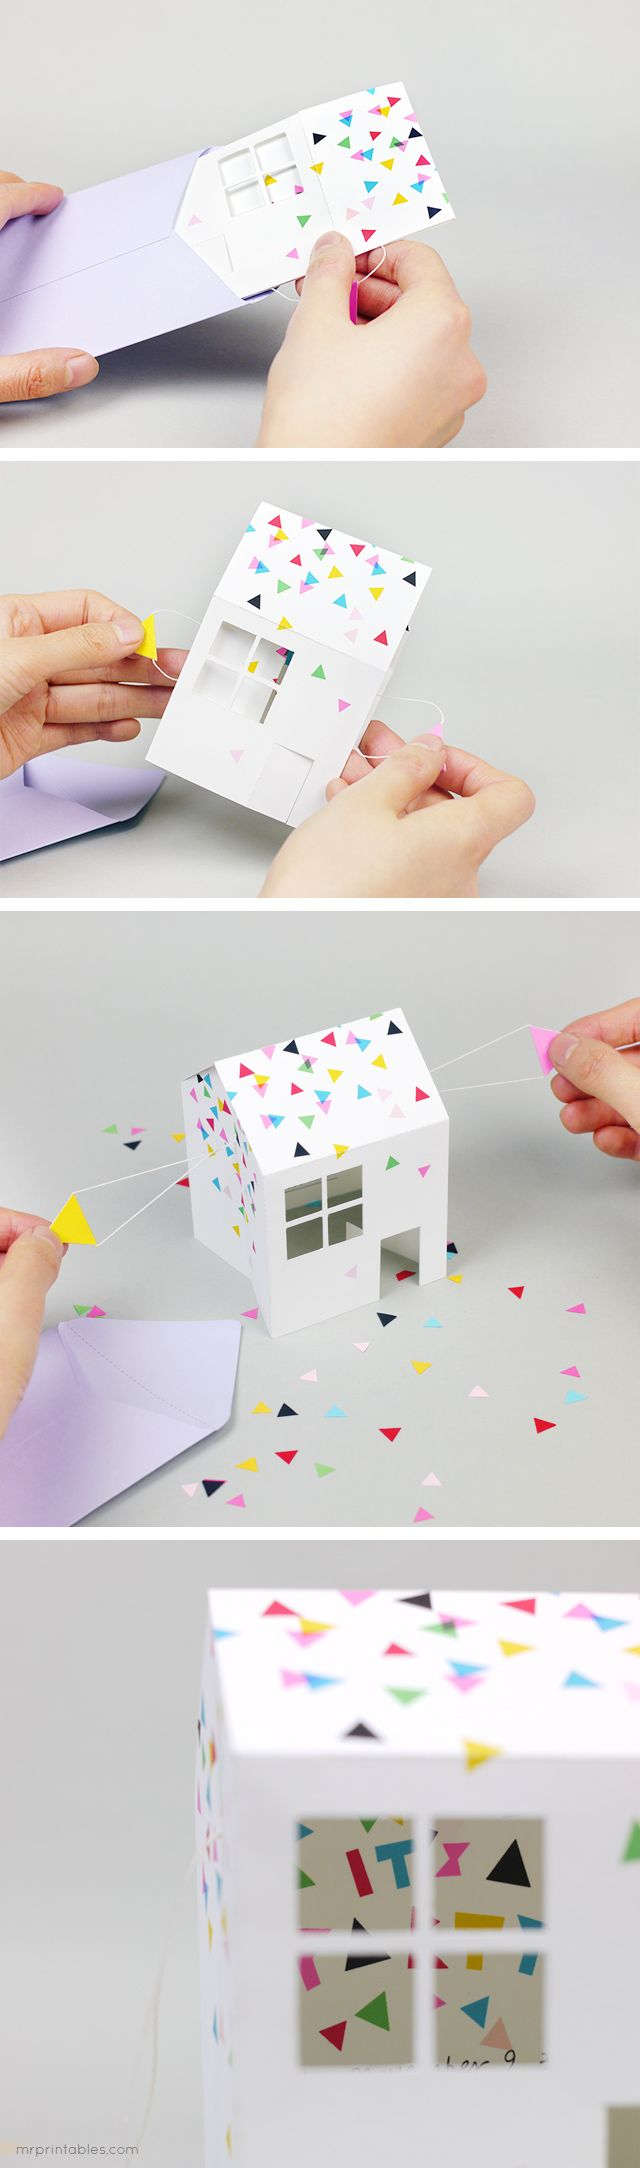 Really cool Pop-Up house party invitation by Mr Printables | Una invitación sorpresa para fiesta muy original